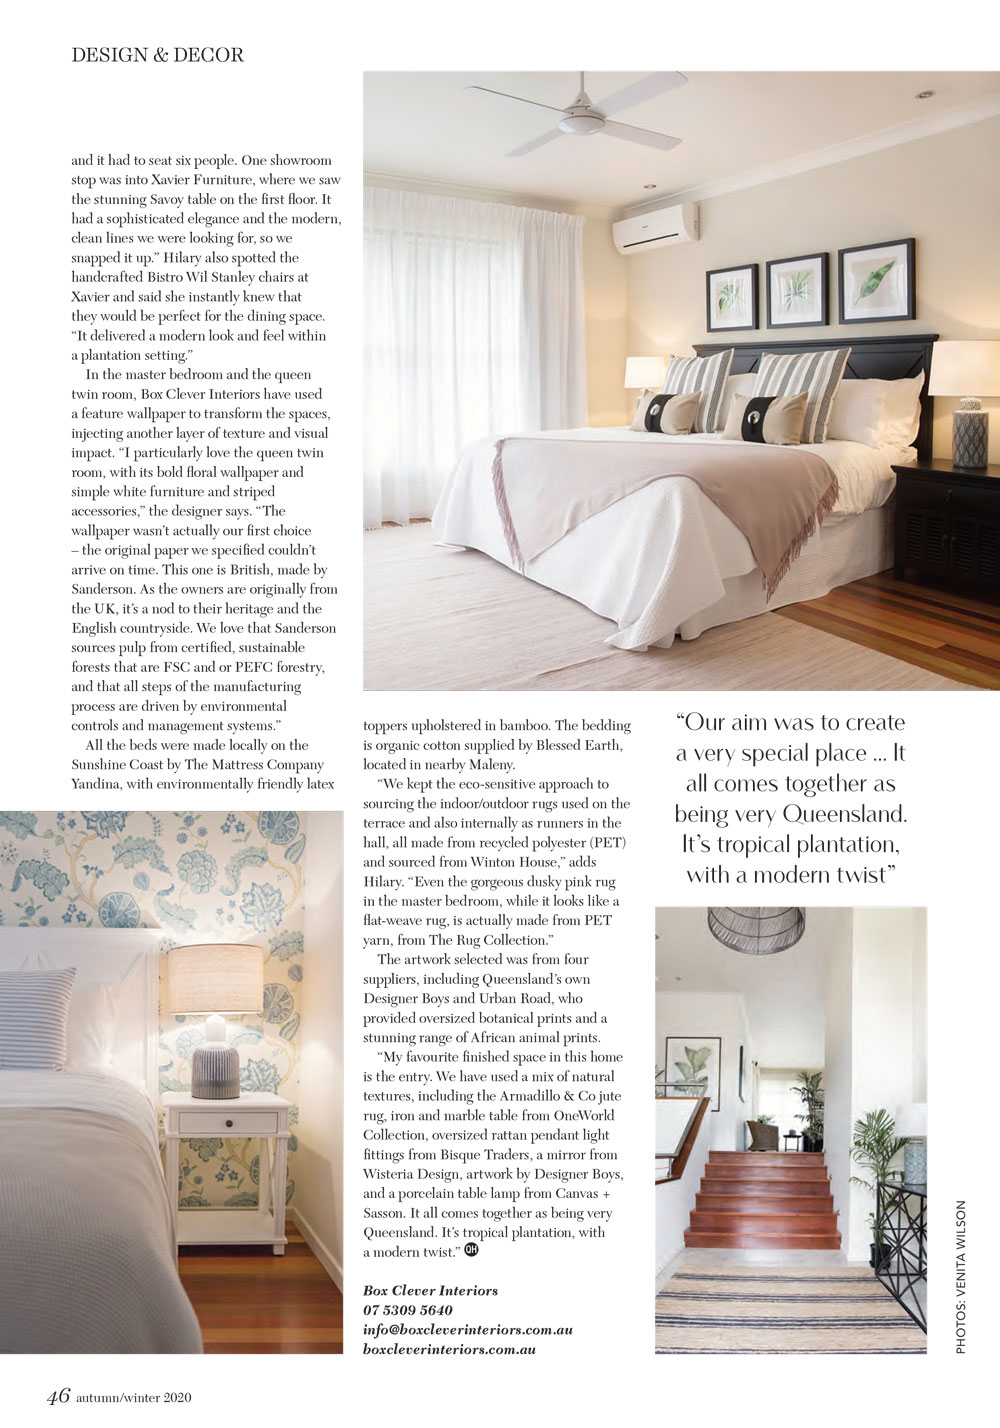 Queensland Homes article Box Clever Interiors